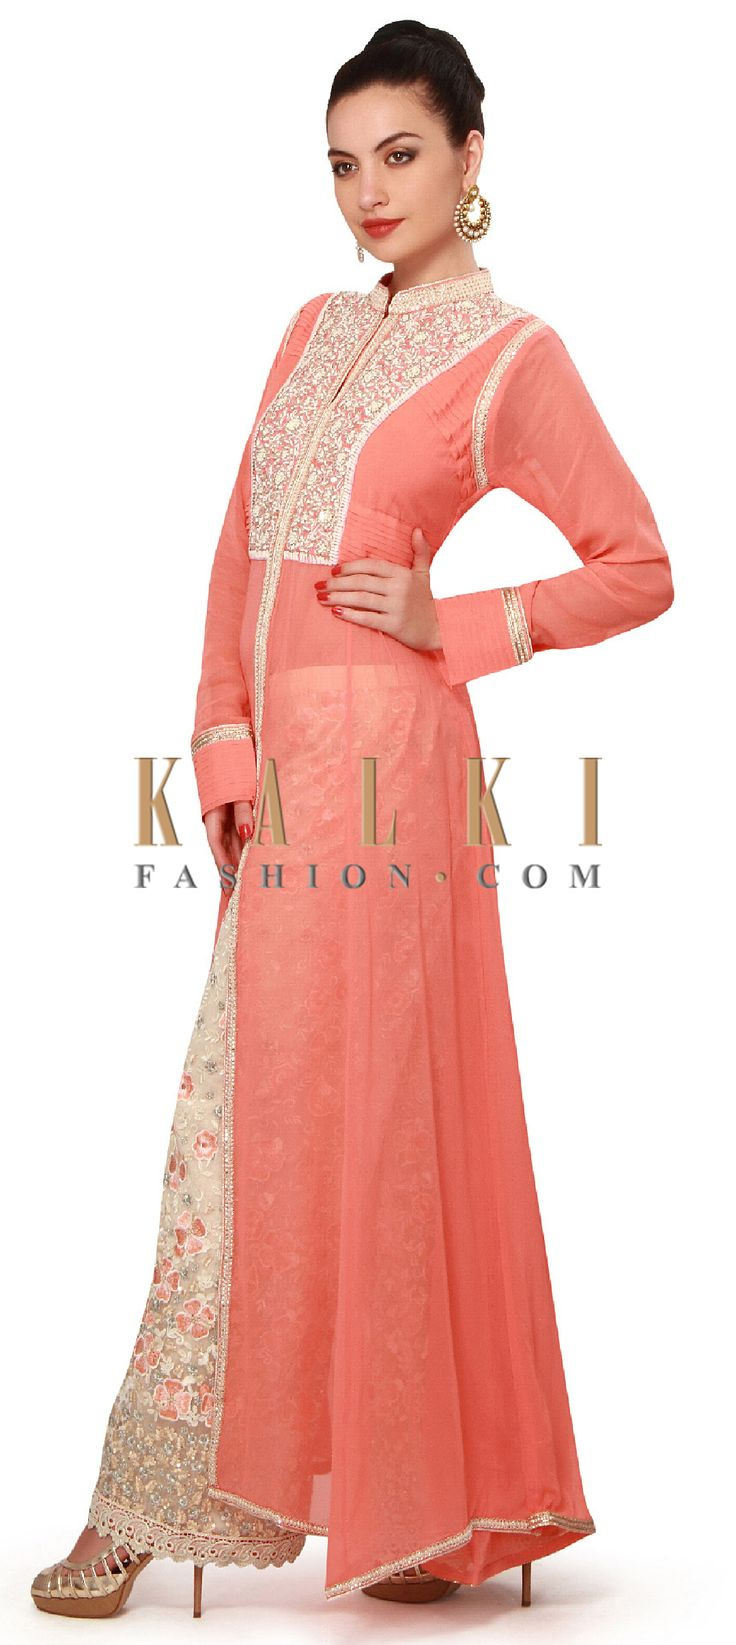 Buy Online from the link below. We ship worldwide (Free Shipping over US$100). Product SKU - 317475. Product Price - $199.00. Product Link - http://www.kalkifashion.com/peach-suit-features-with-embroidered-pants-only-on-kalki.html